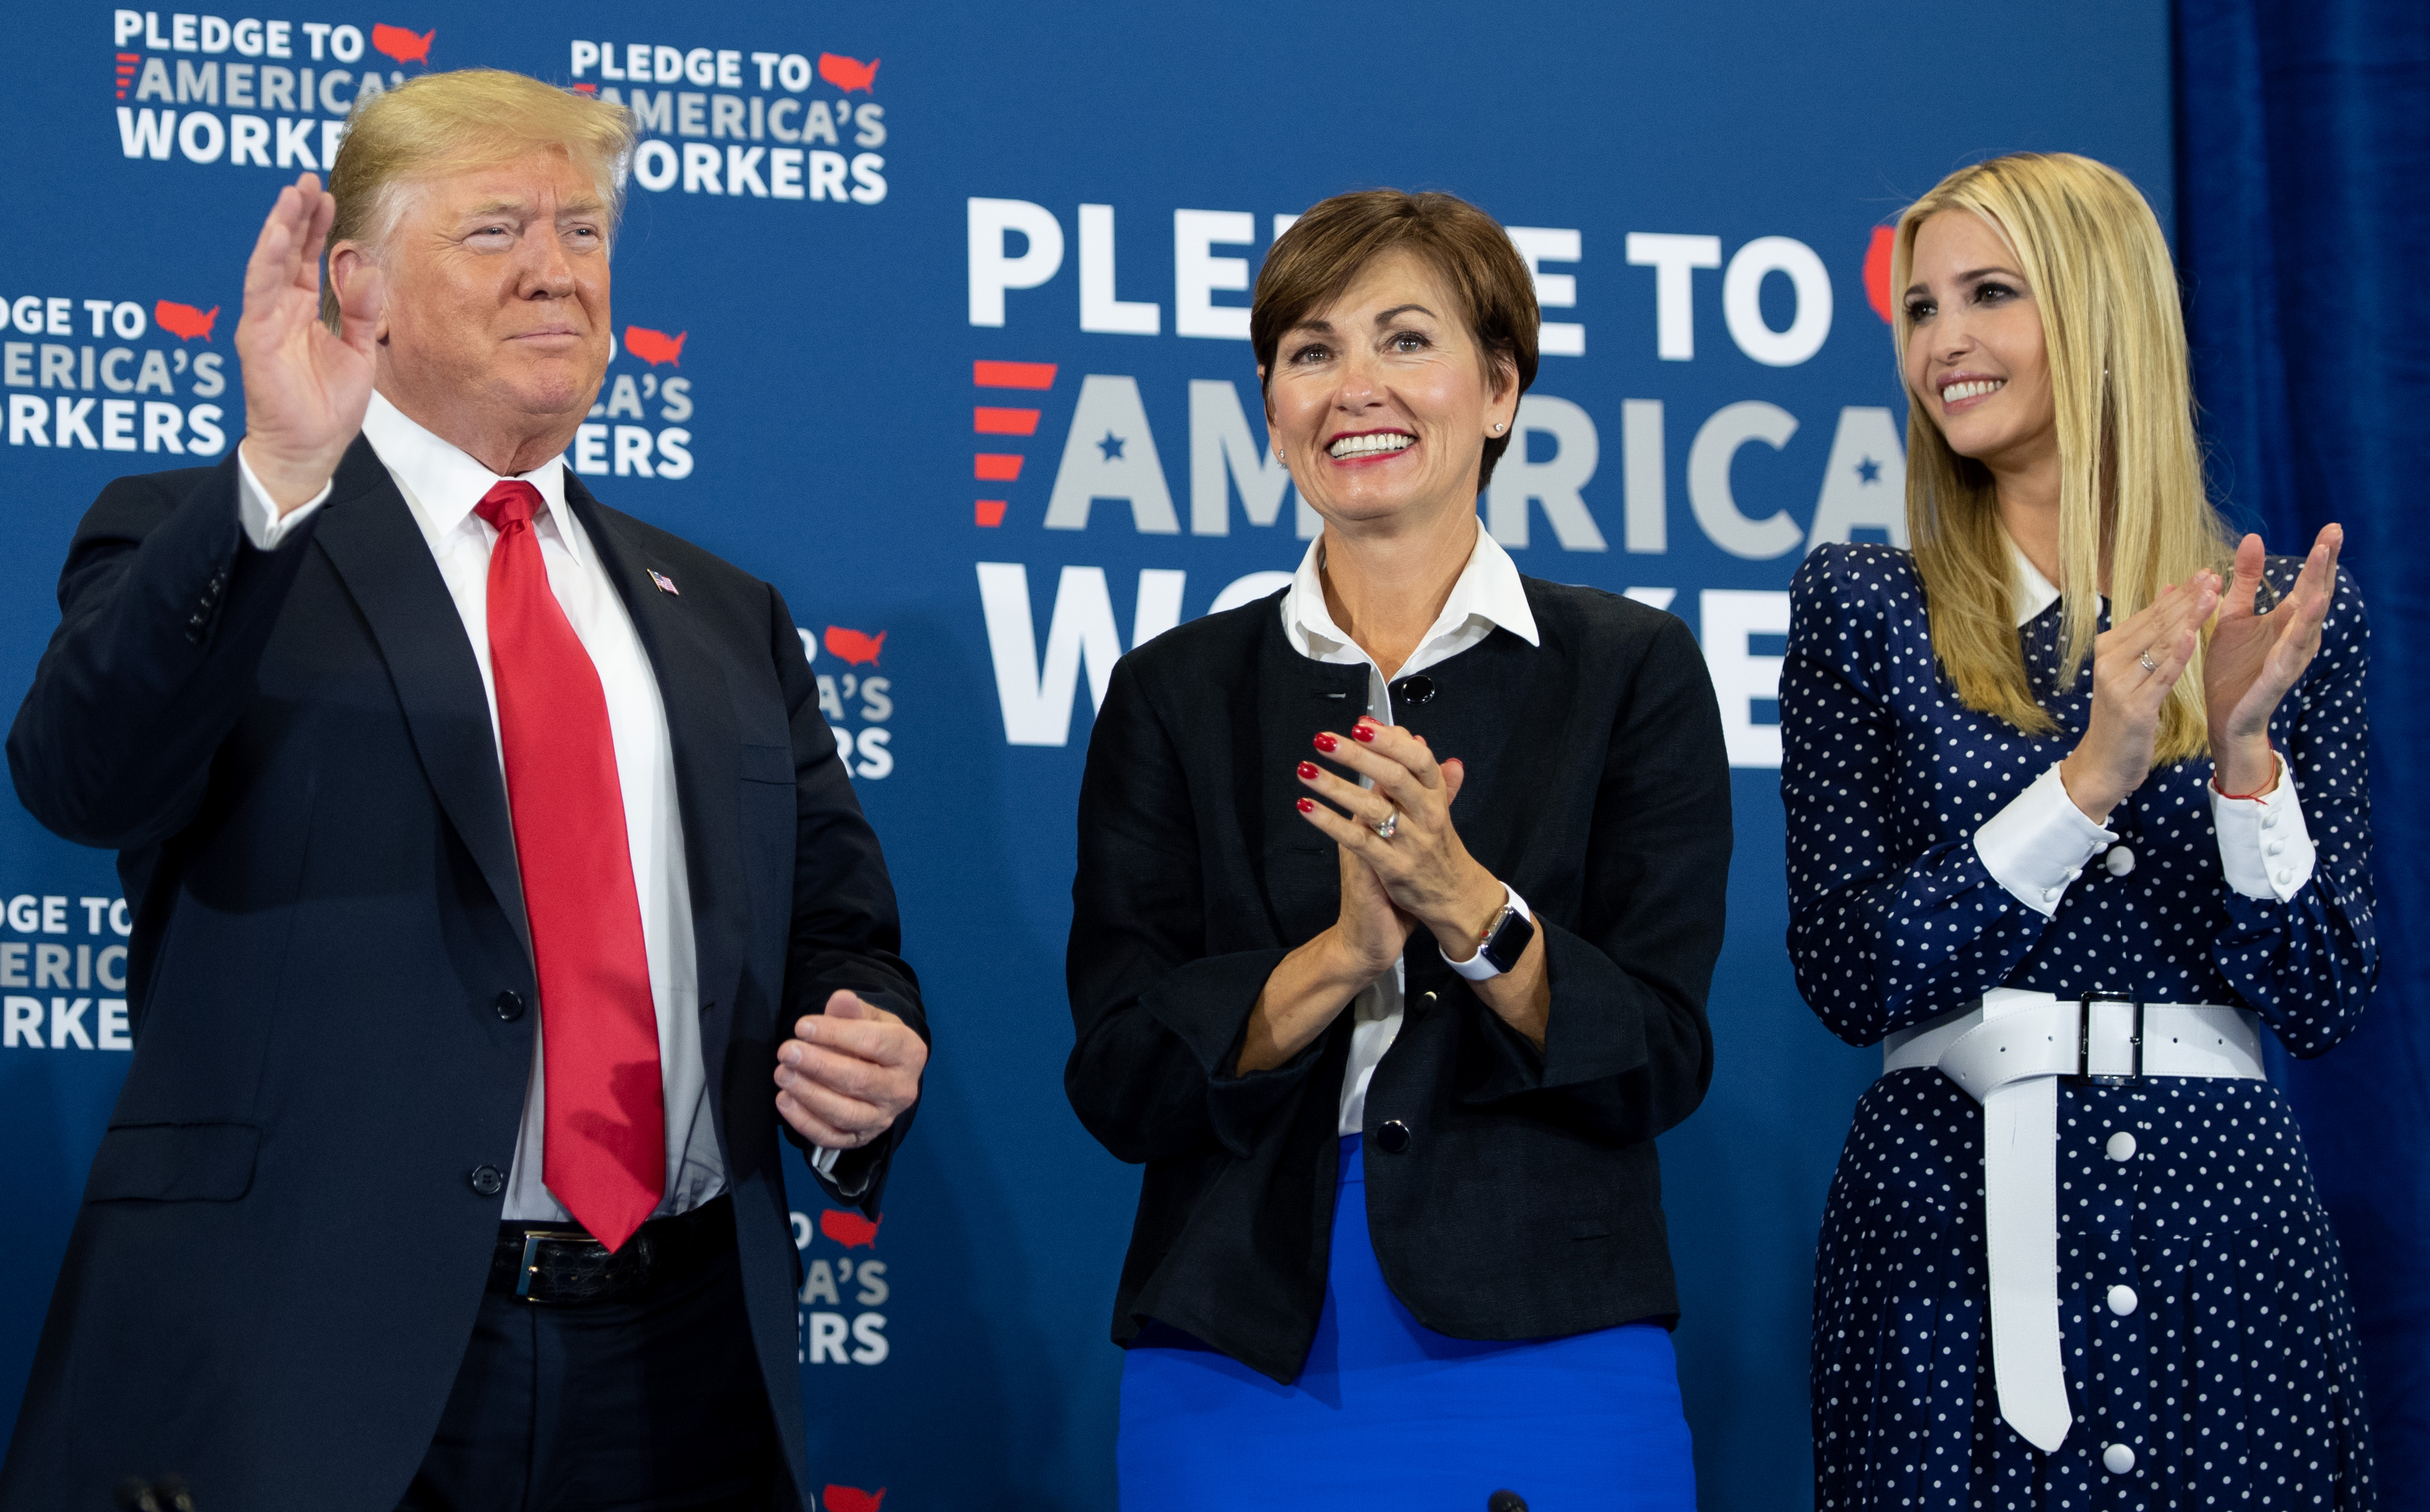 US President Donald Trump speaks, alongside Iowa Governor Kim Reynolds (C) and daughter Ivanka Trump (R), as he holds a roundtable discussion on workforce development at Northeast Iowa Community College in Peosta, Iowa, July 26, 2018. (SAUL LOEB/AFP via Getty Images)